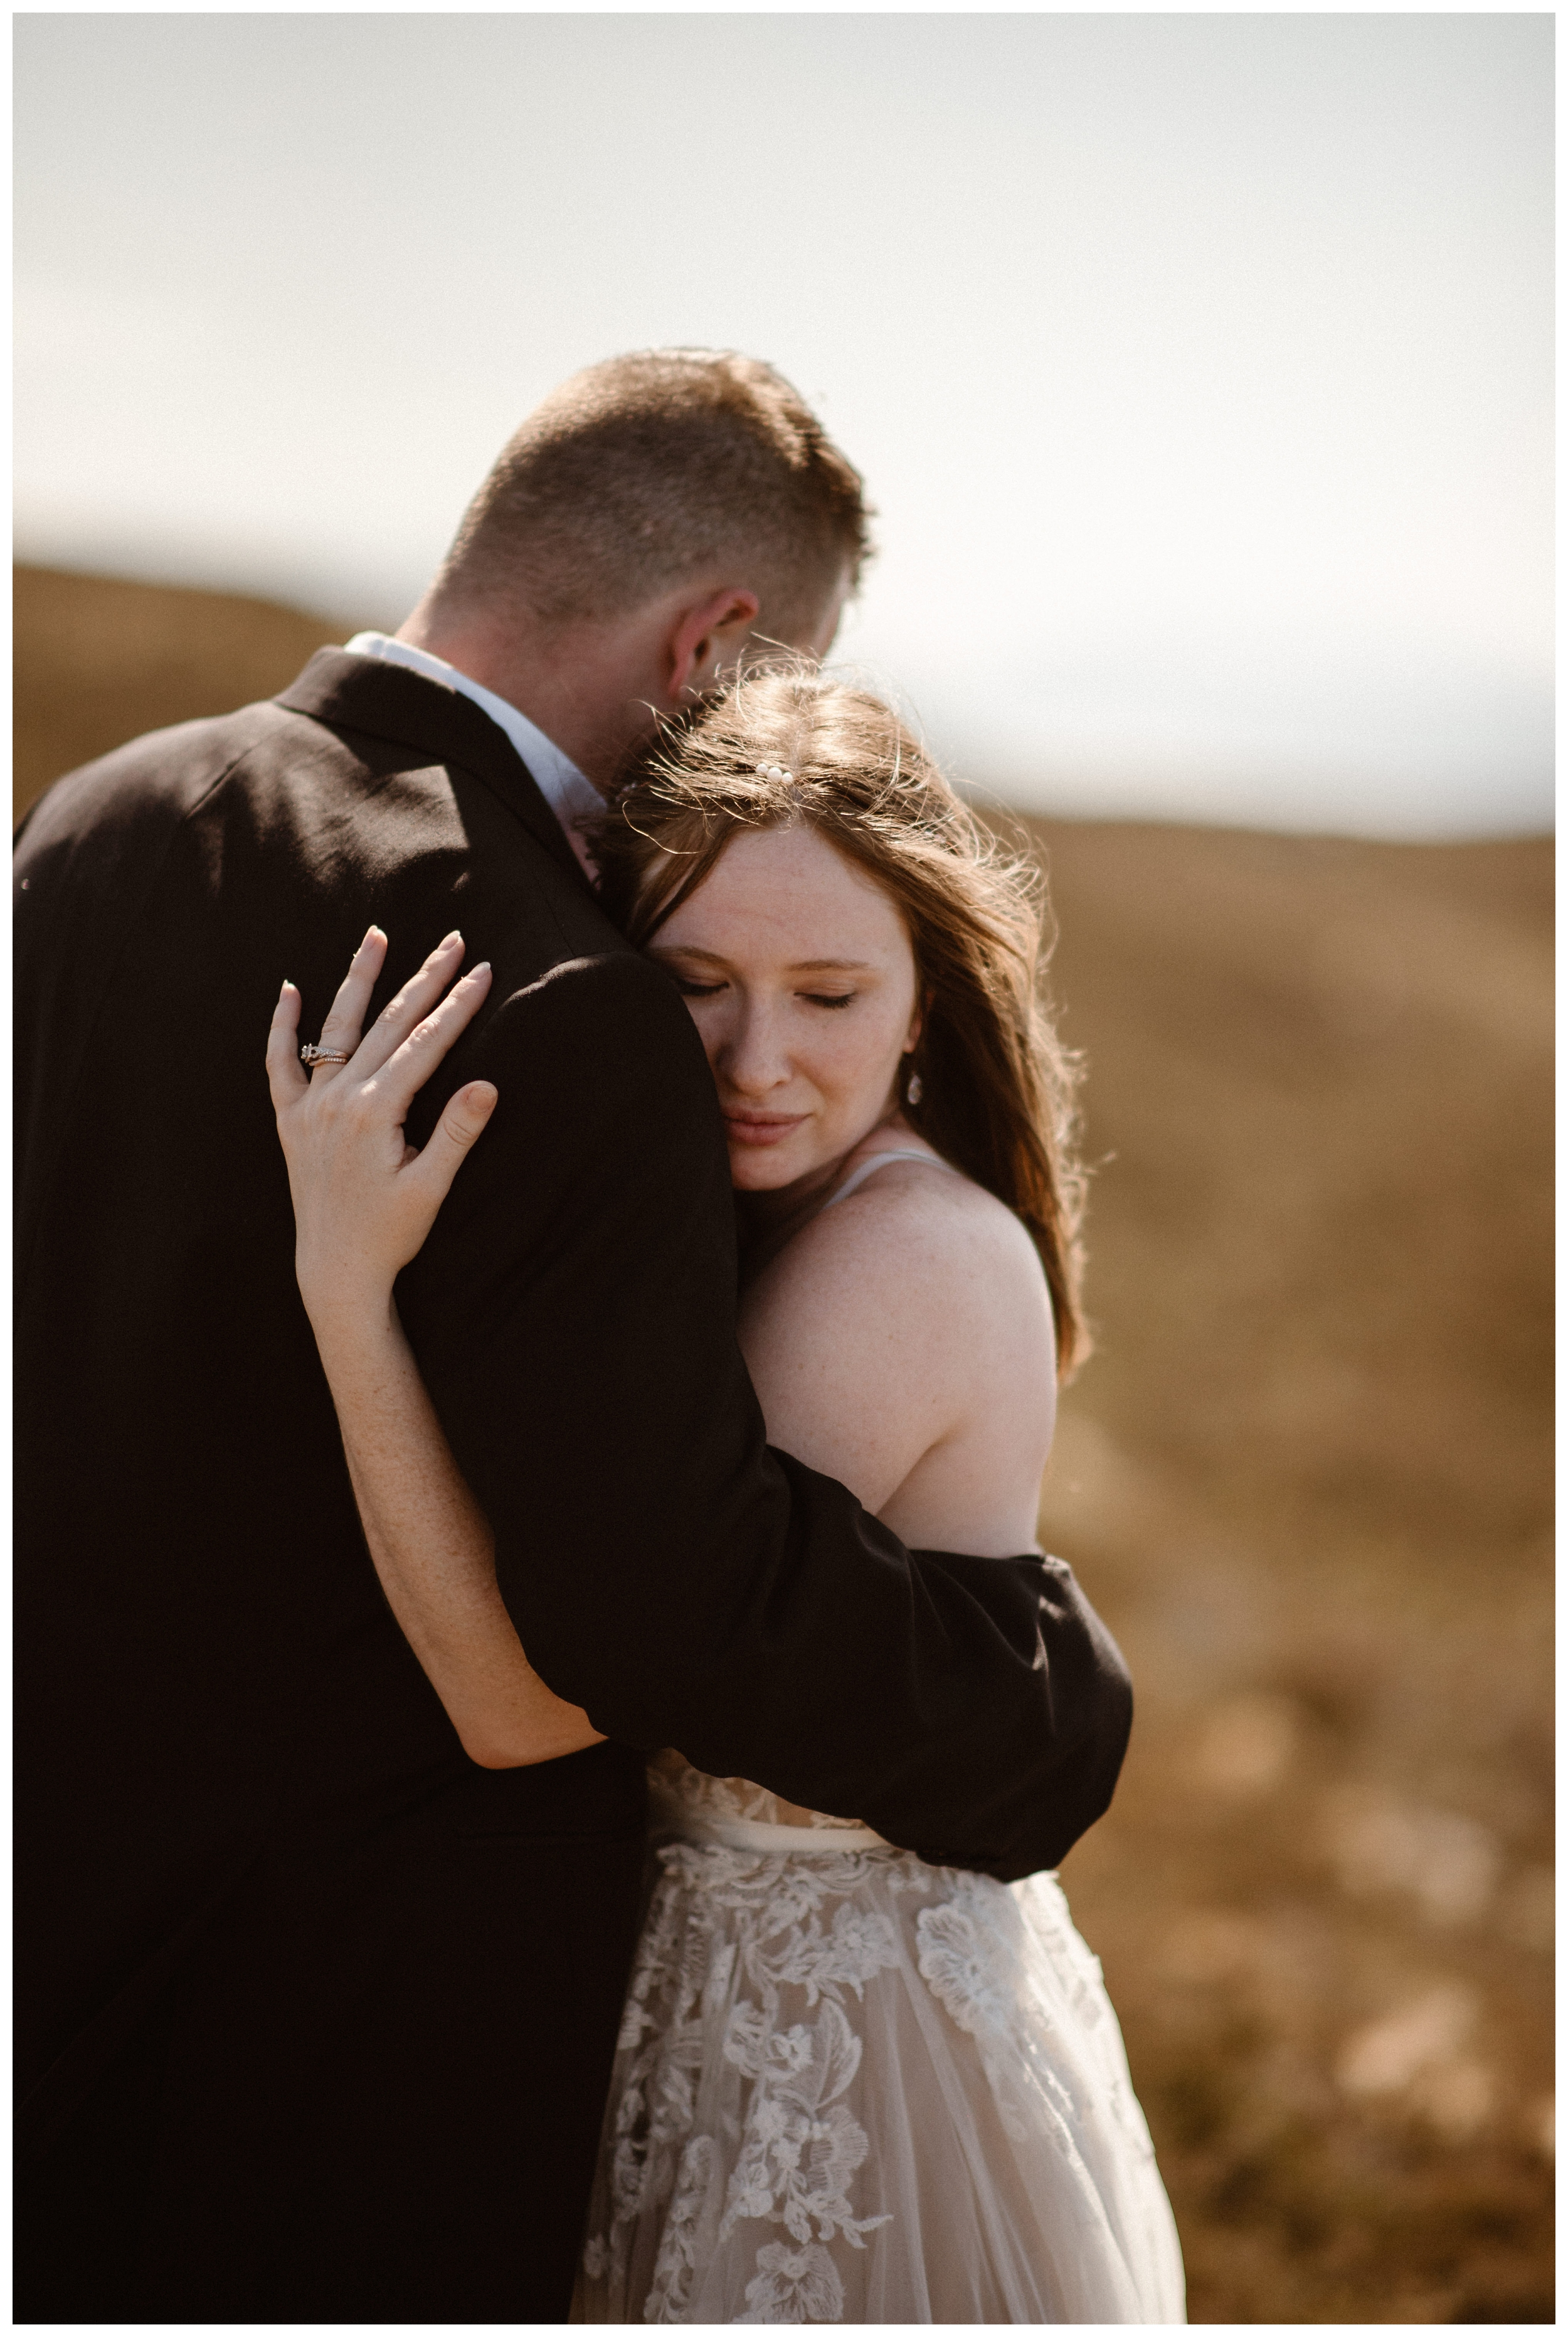 The sun was unusually bright in Scotland for Elissa and Daniel's destination elopement day after photos which we took on the shores of Loch Ness. Photo by Maddie Mae, Adventure Instead.